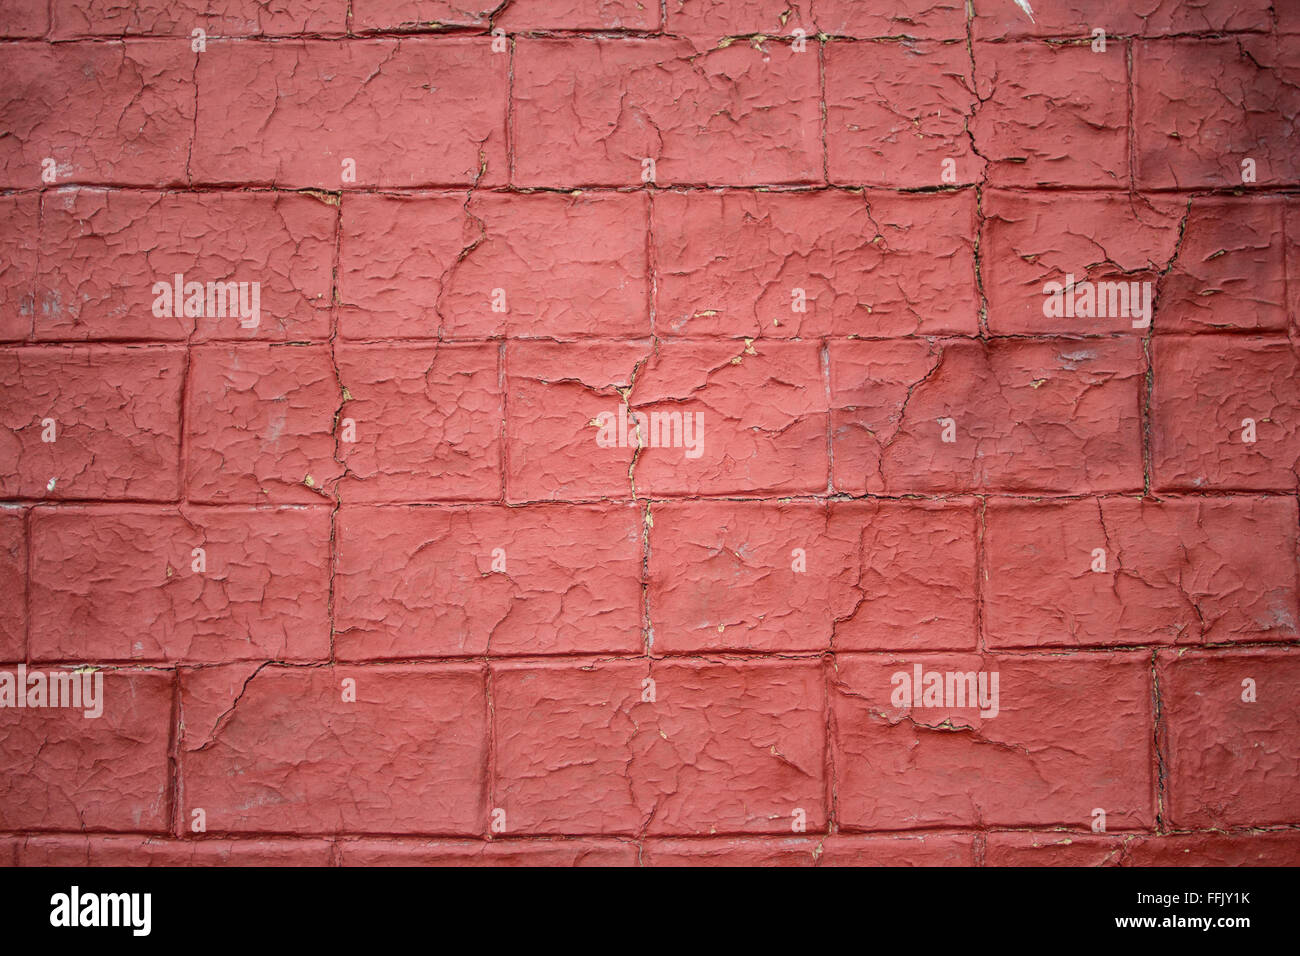 Worn out red brick wall - Stock Image